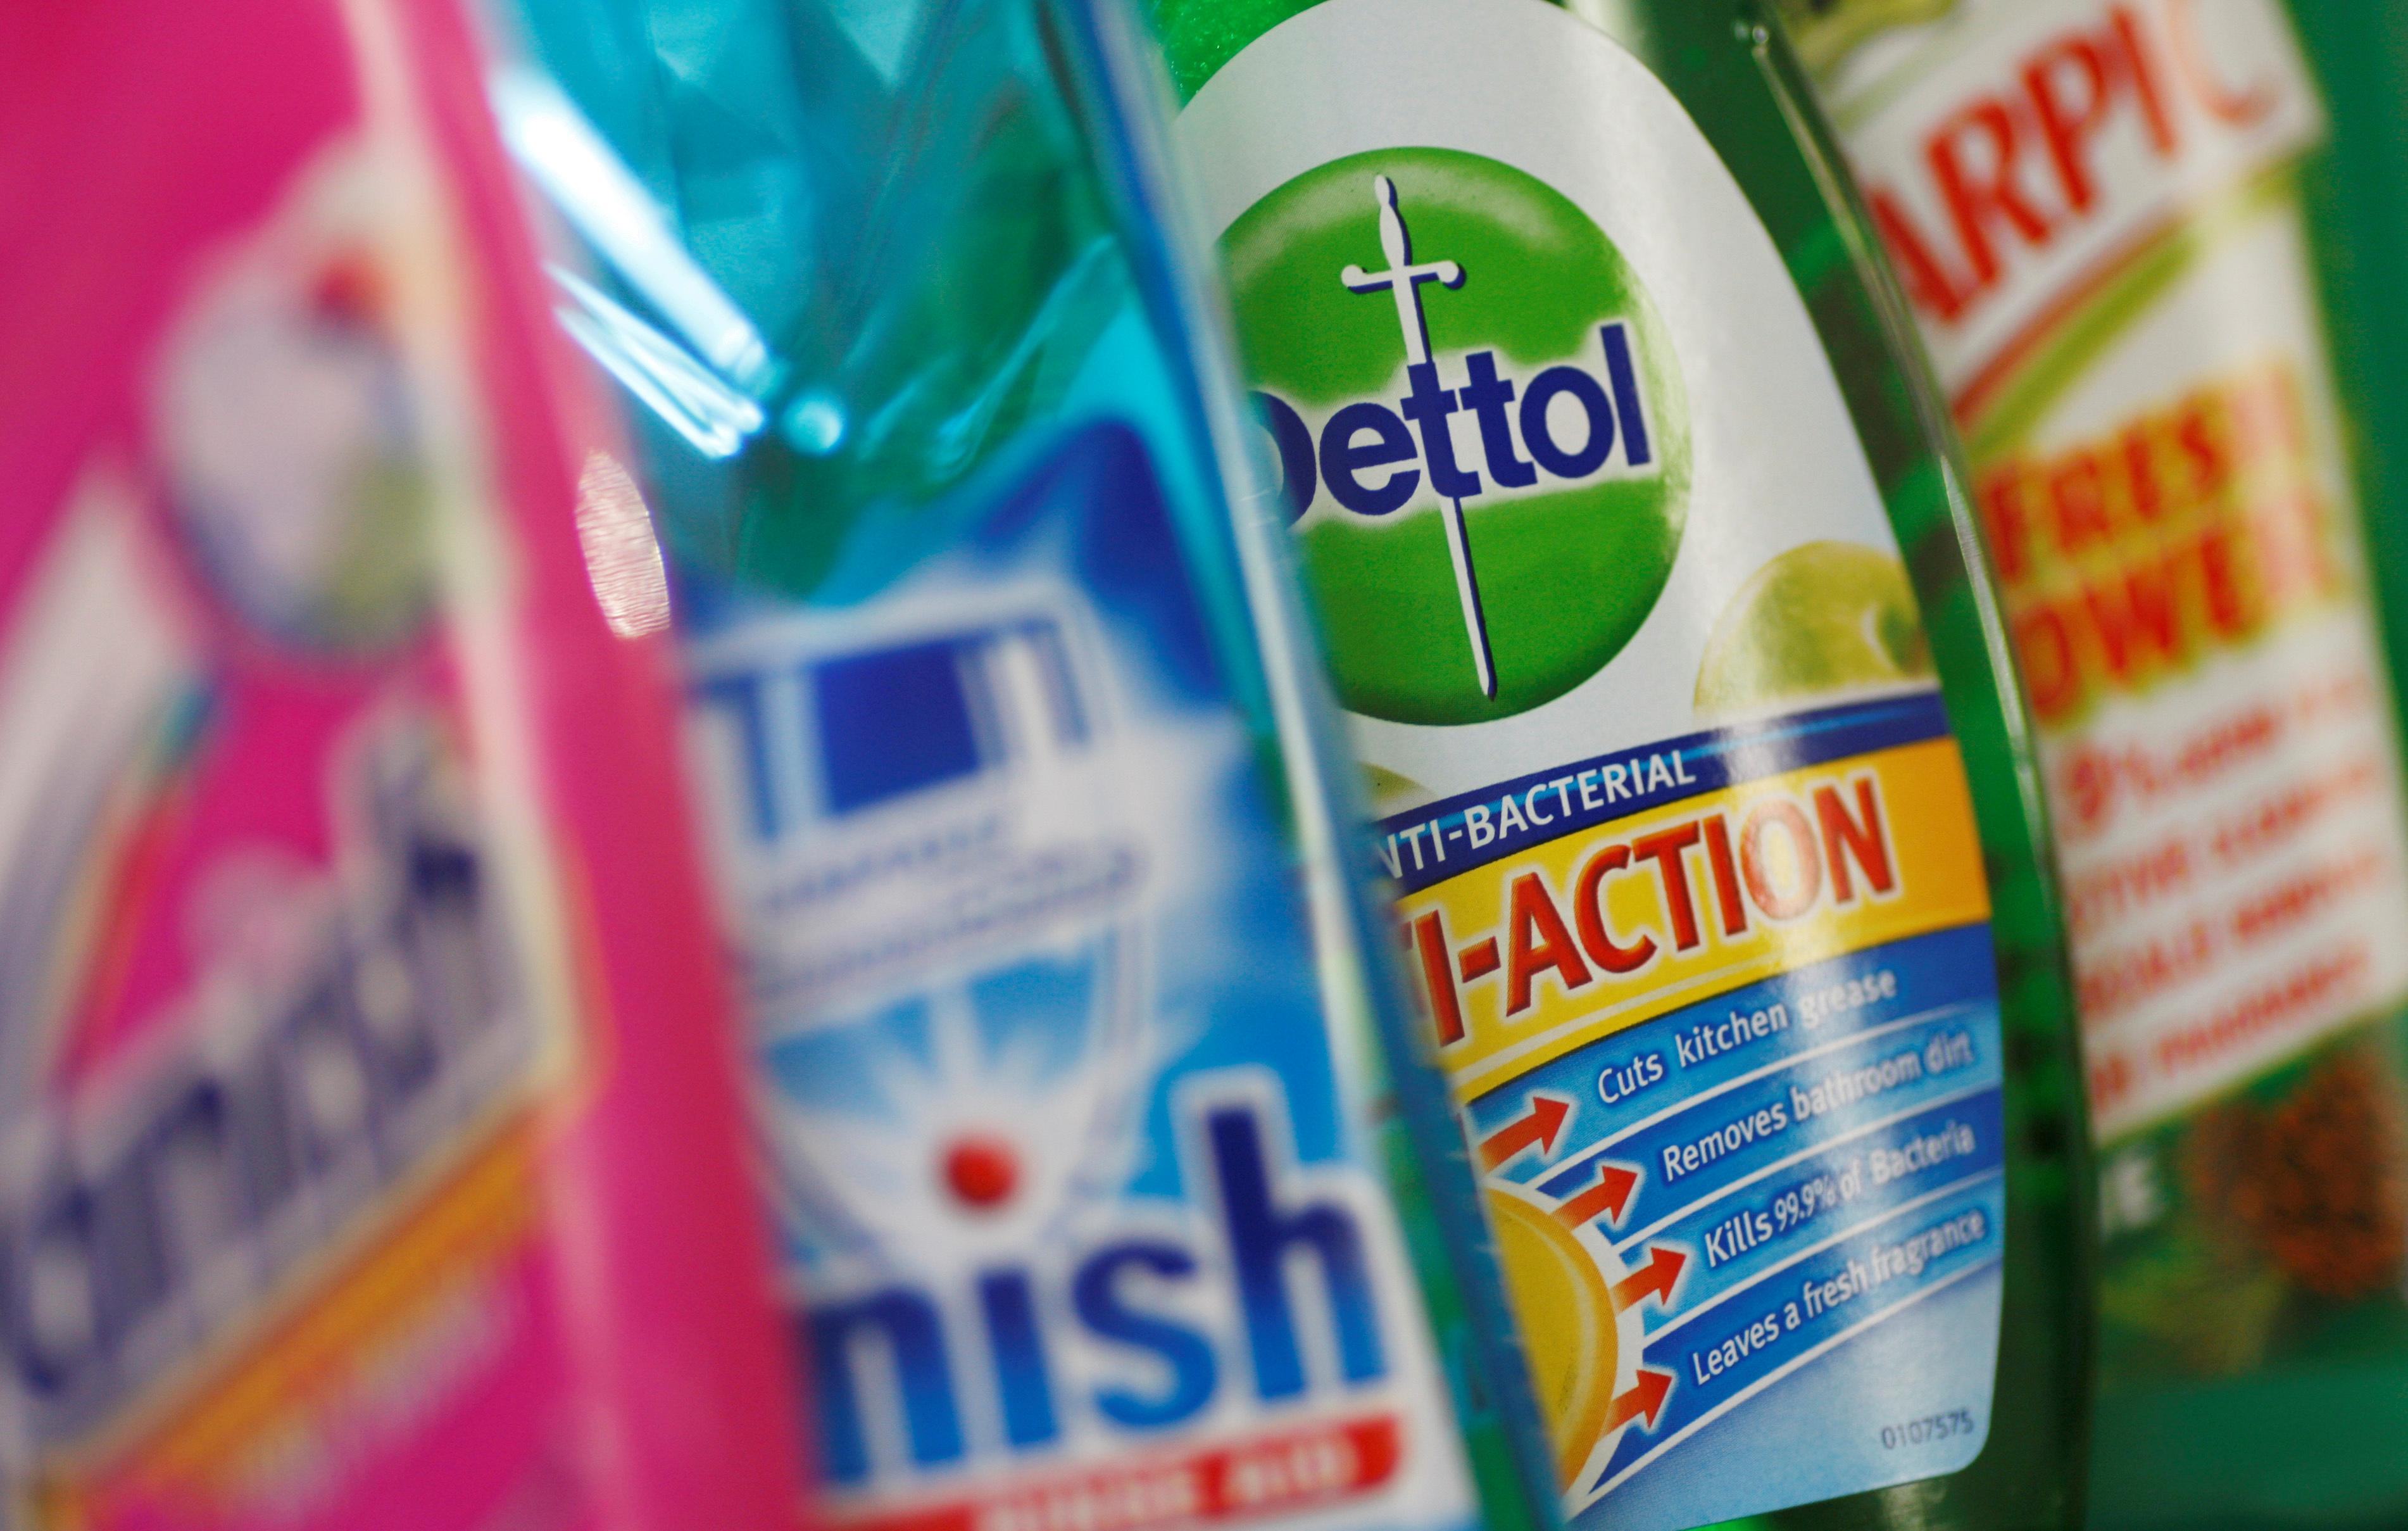 Products produced by Reckitt Benckiser; Vanish, Finish, Dettol and Harpic, are seen in London, Britain February 12, 2008. REUTERS/Stephen Hird